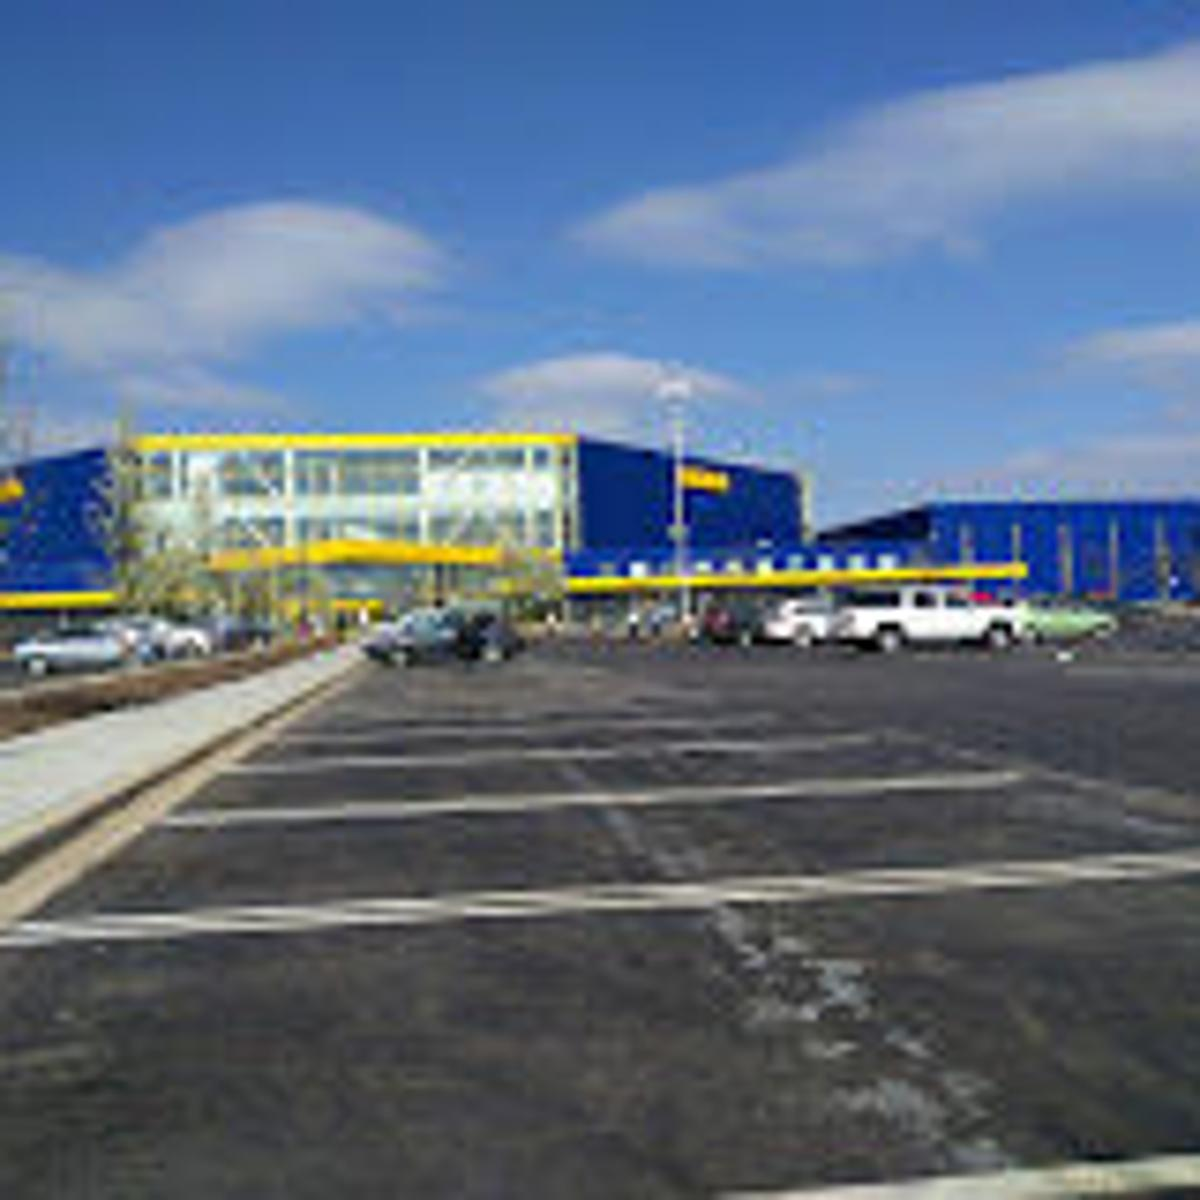 IKEA: Oak Creek or Schaumburg, Illinois, for Madison